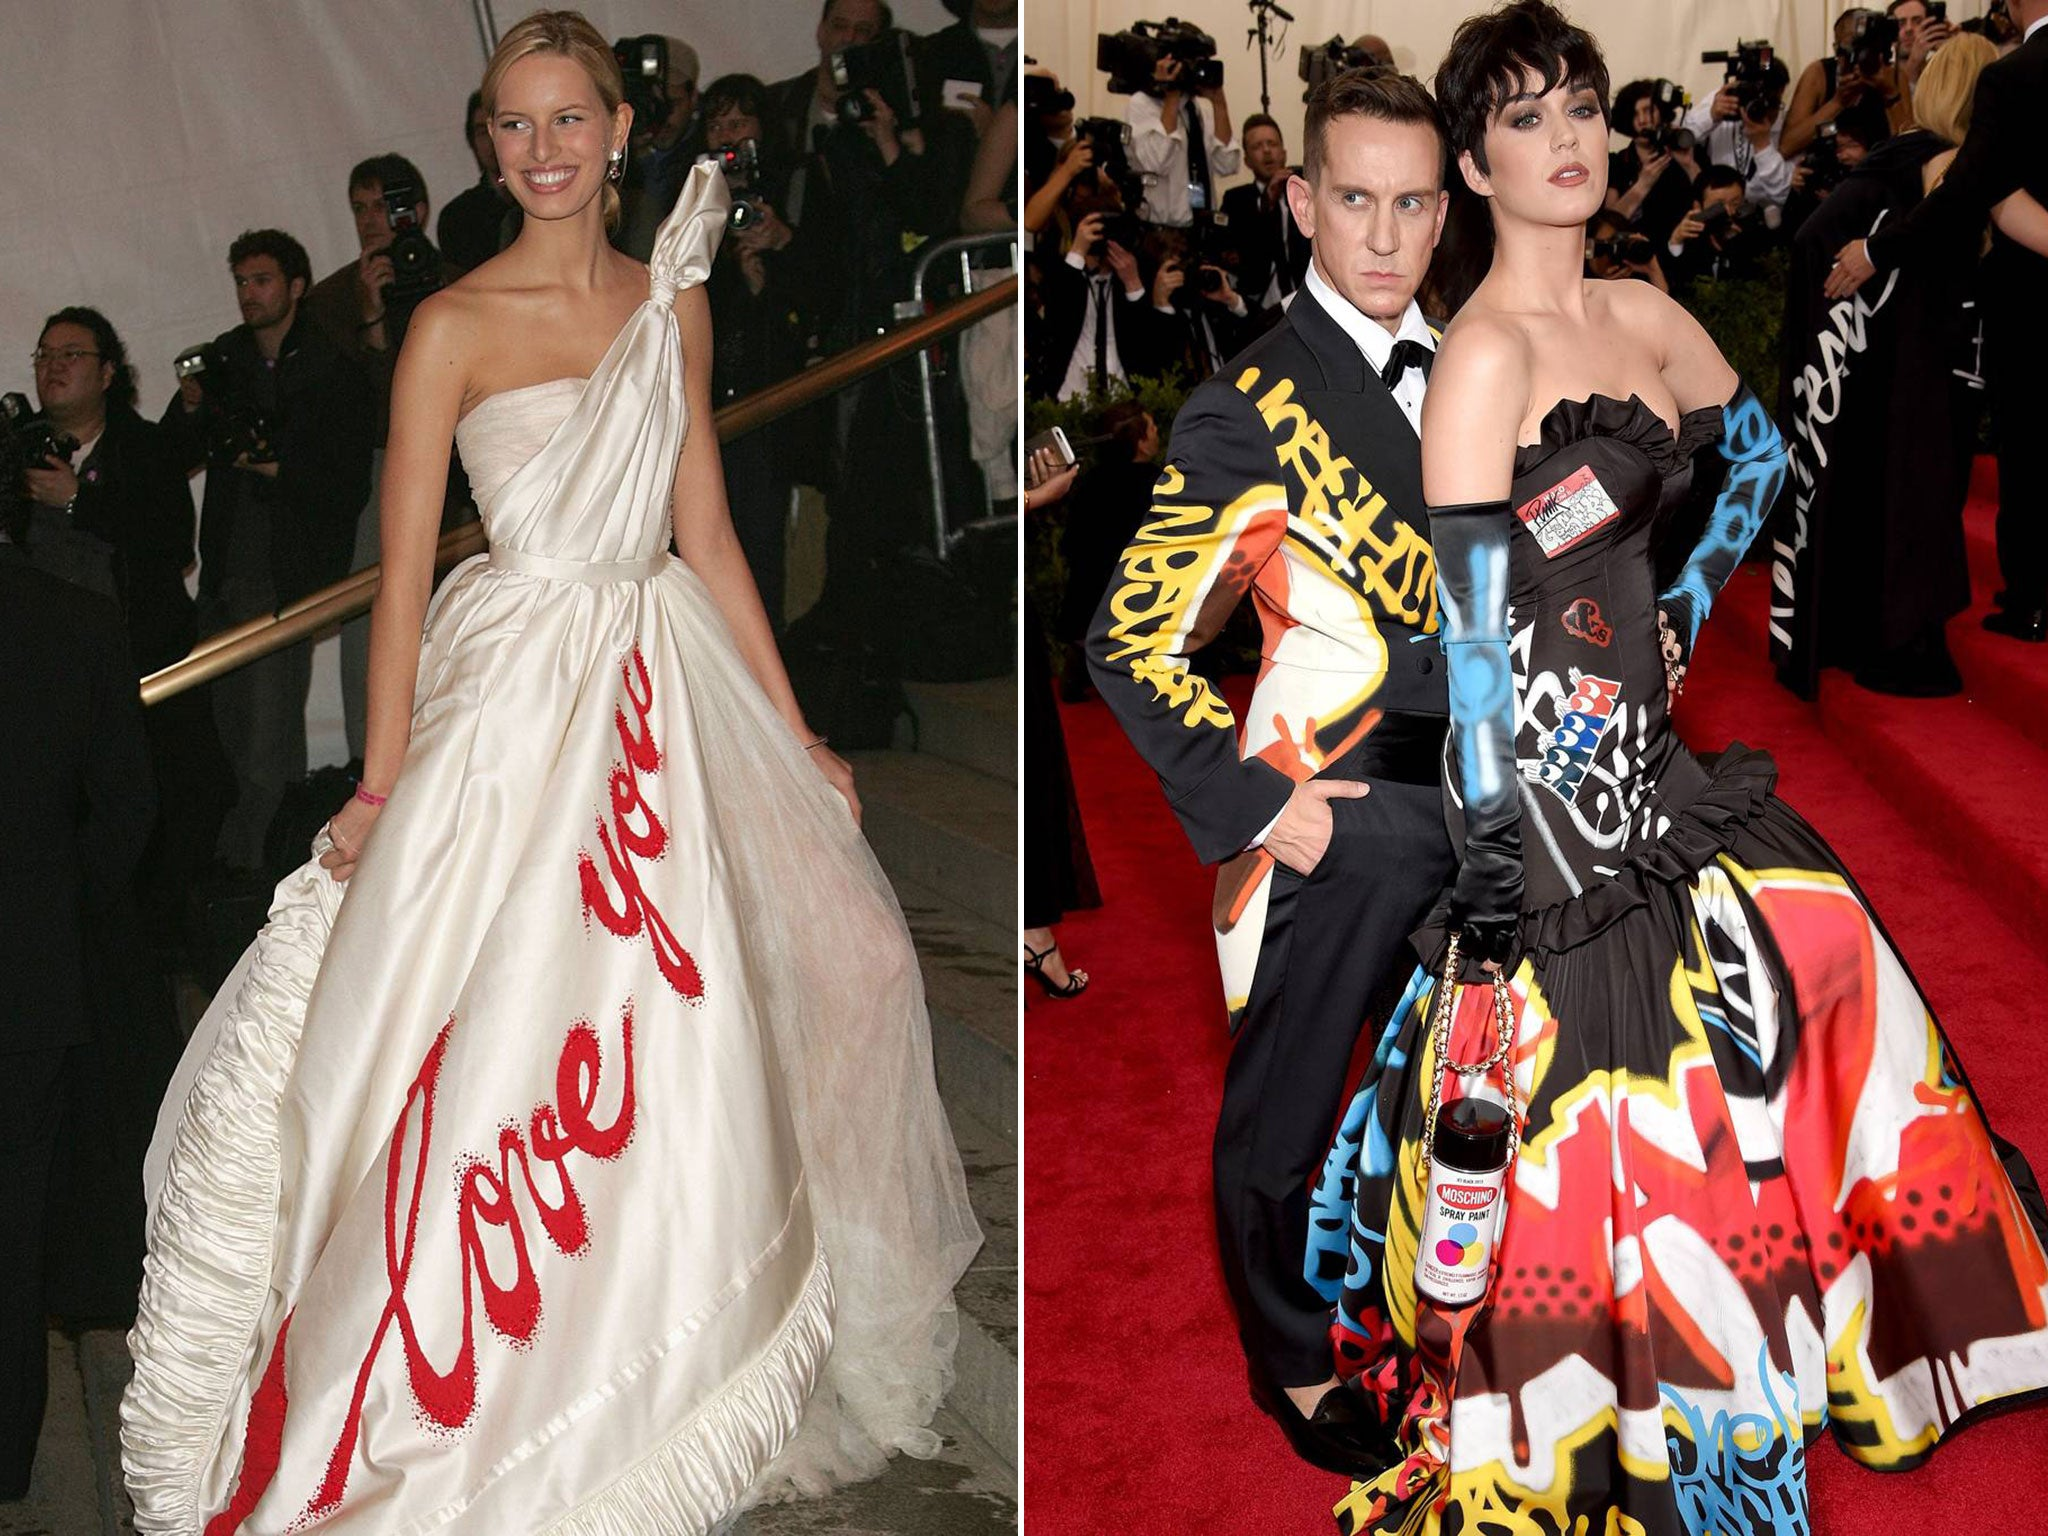 The Met Gala 2015 Compare And Contrast Fashion From The 70s Through